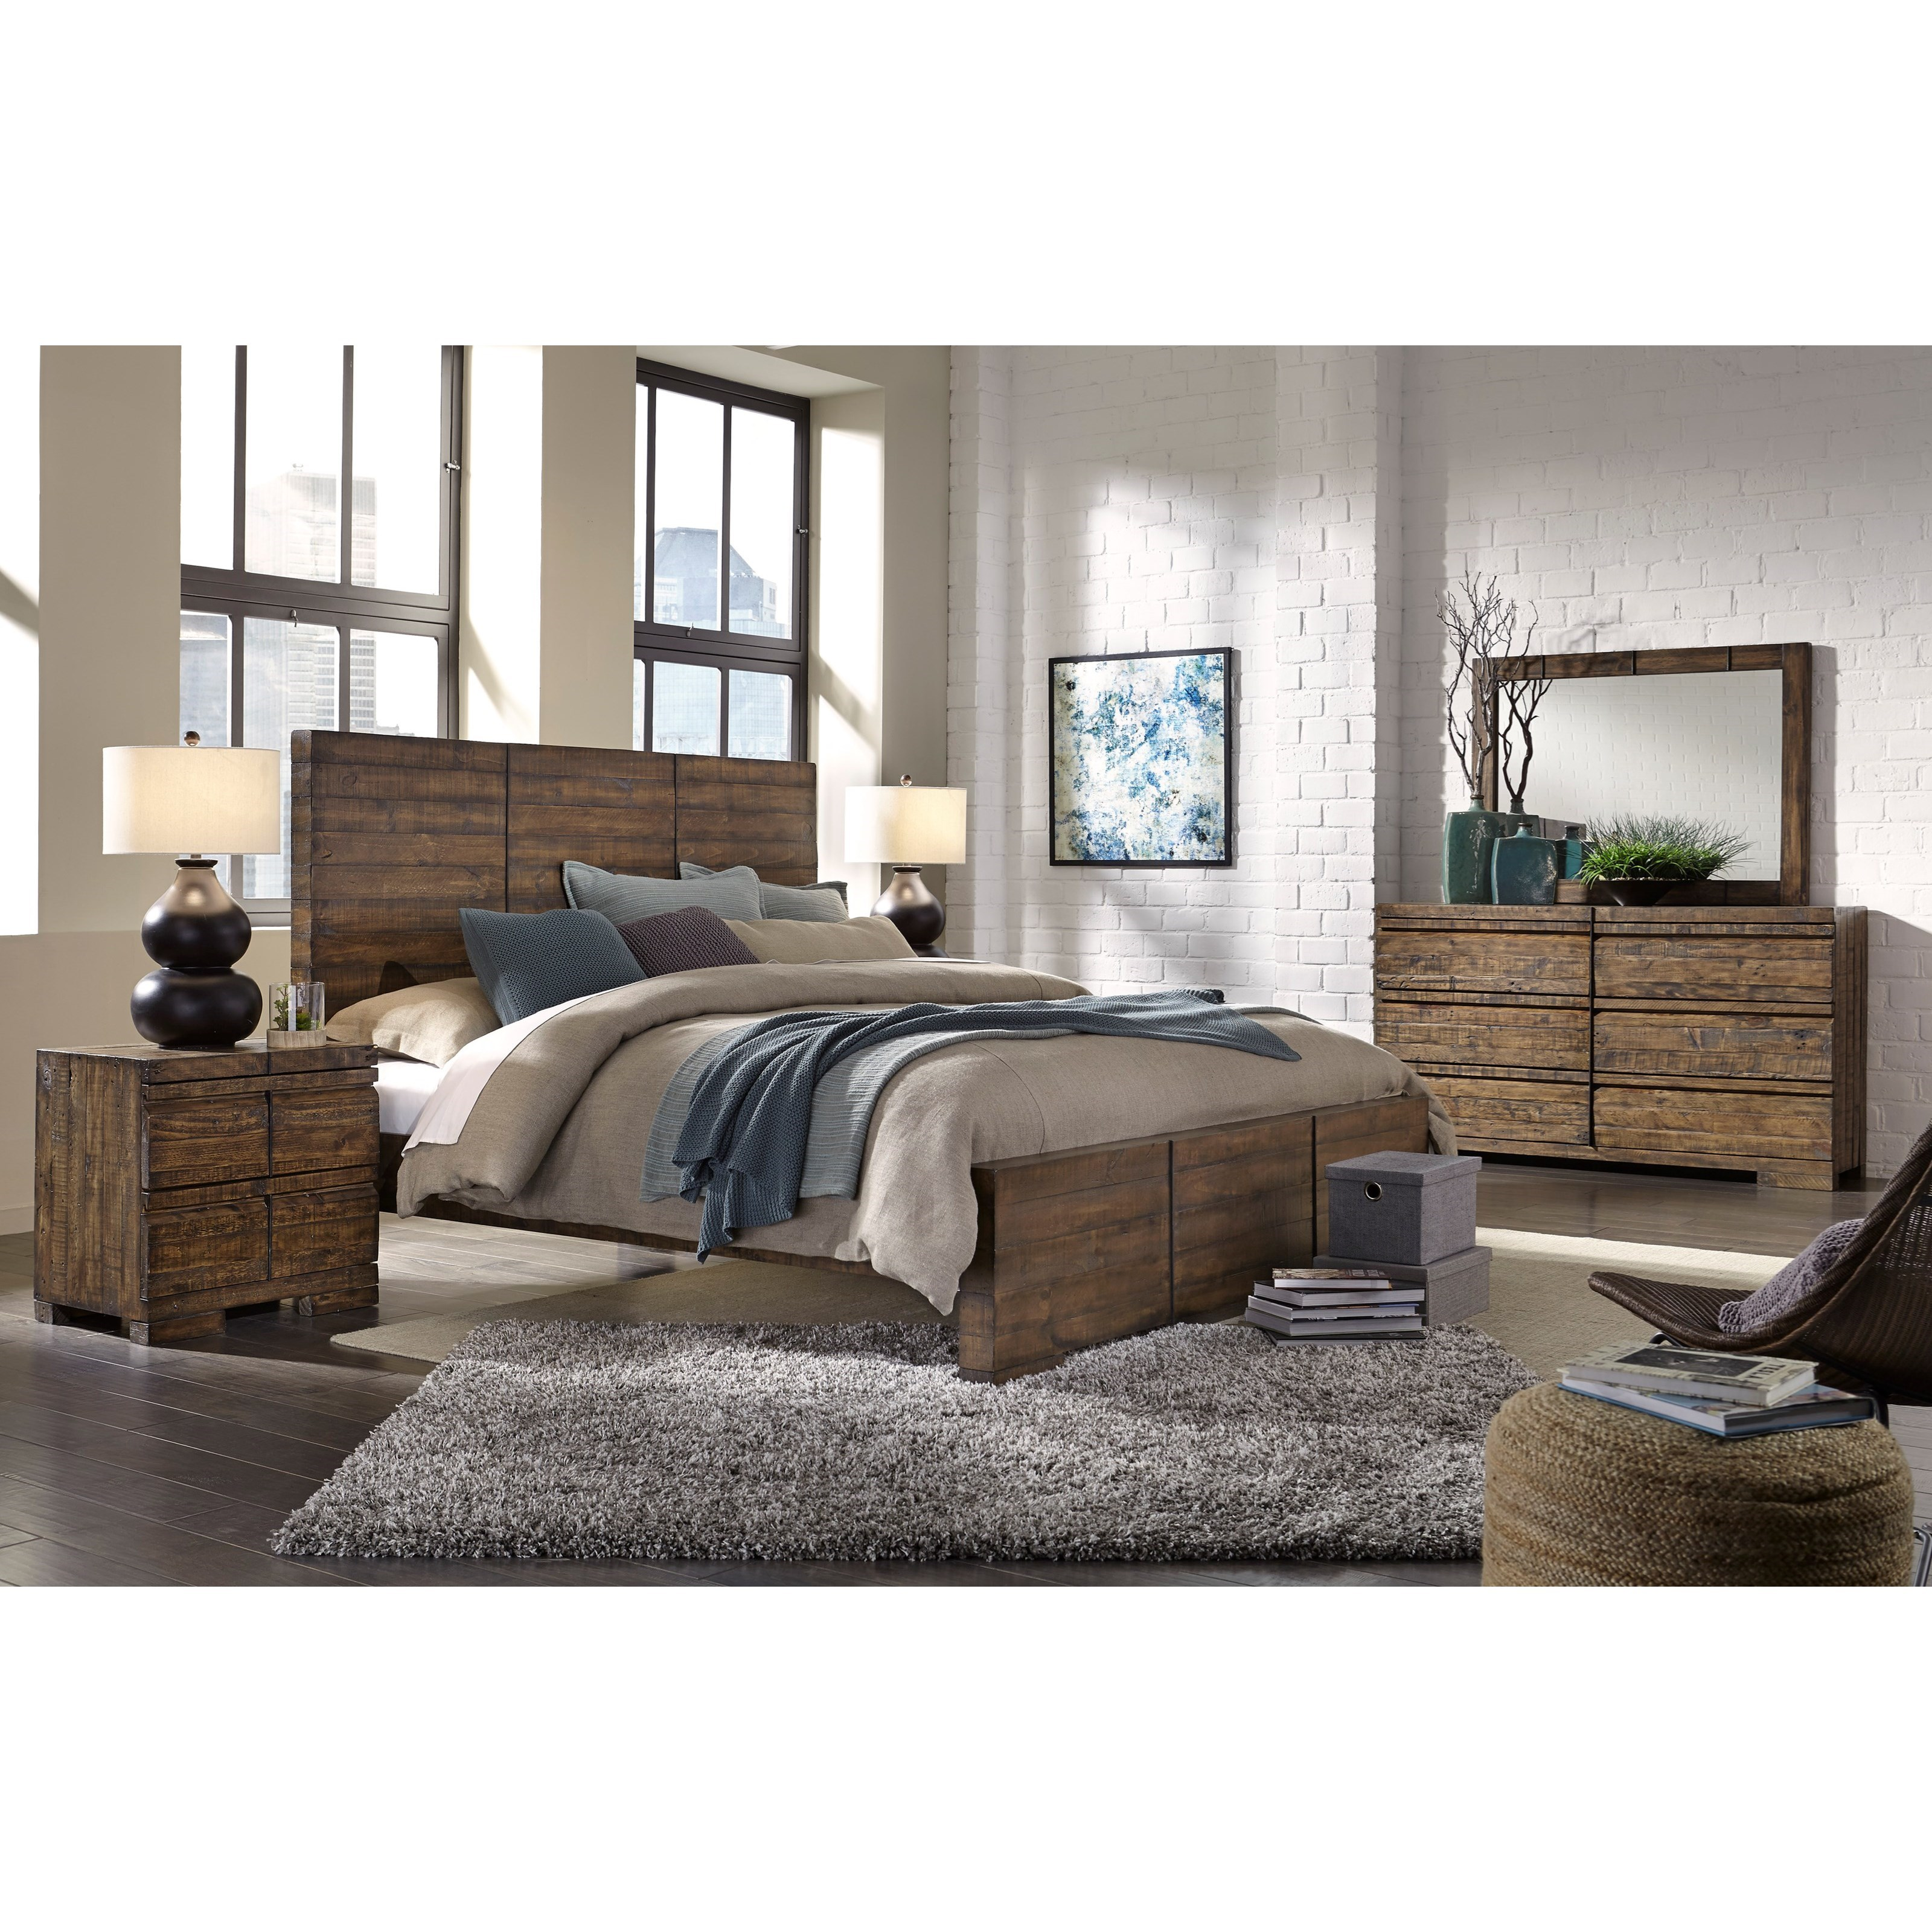 Aspenhome Dimensions Queen Bedroom Group - Item Number: I52 Q Bedroom Group 1